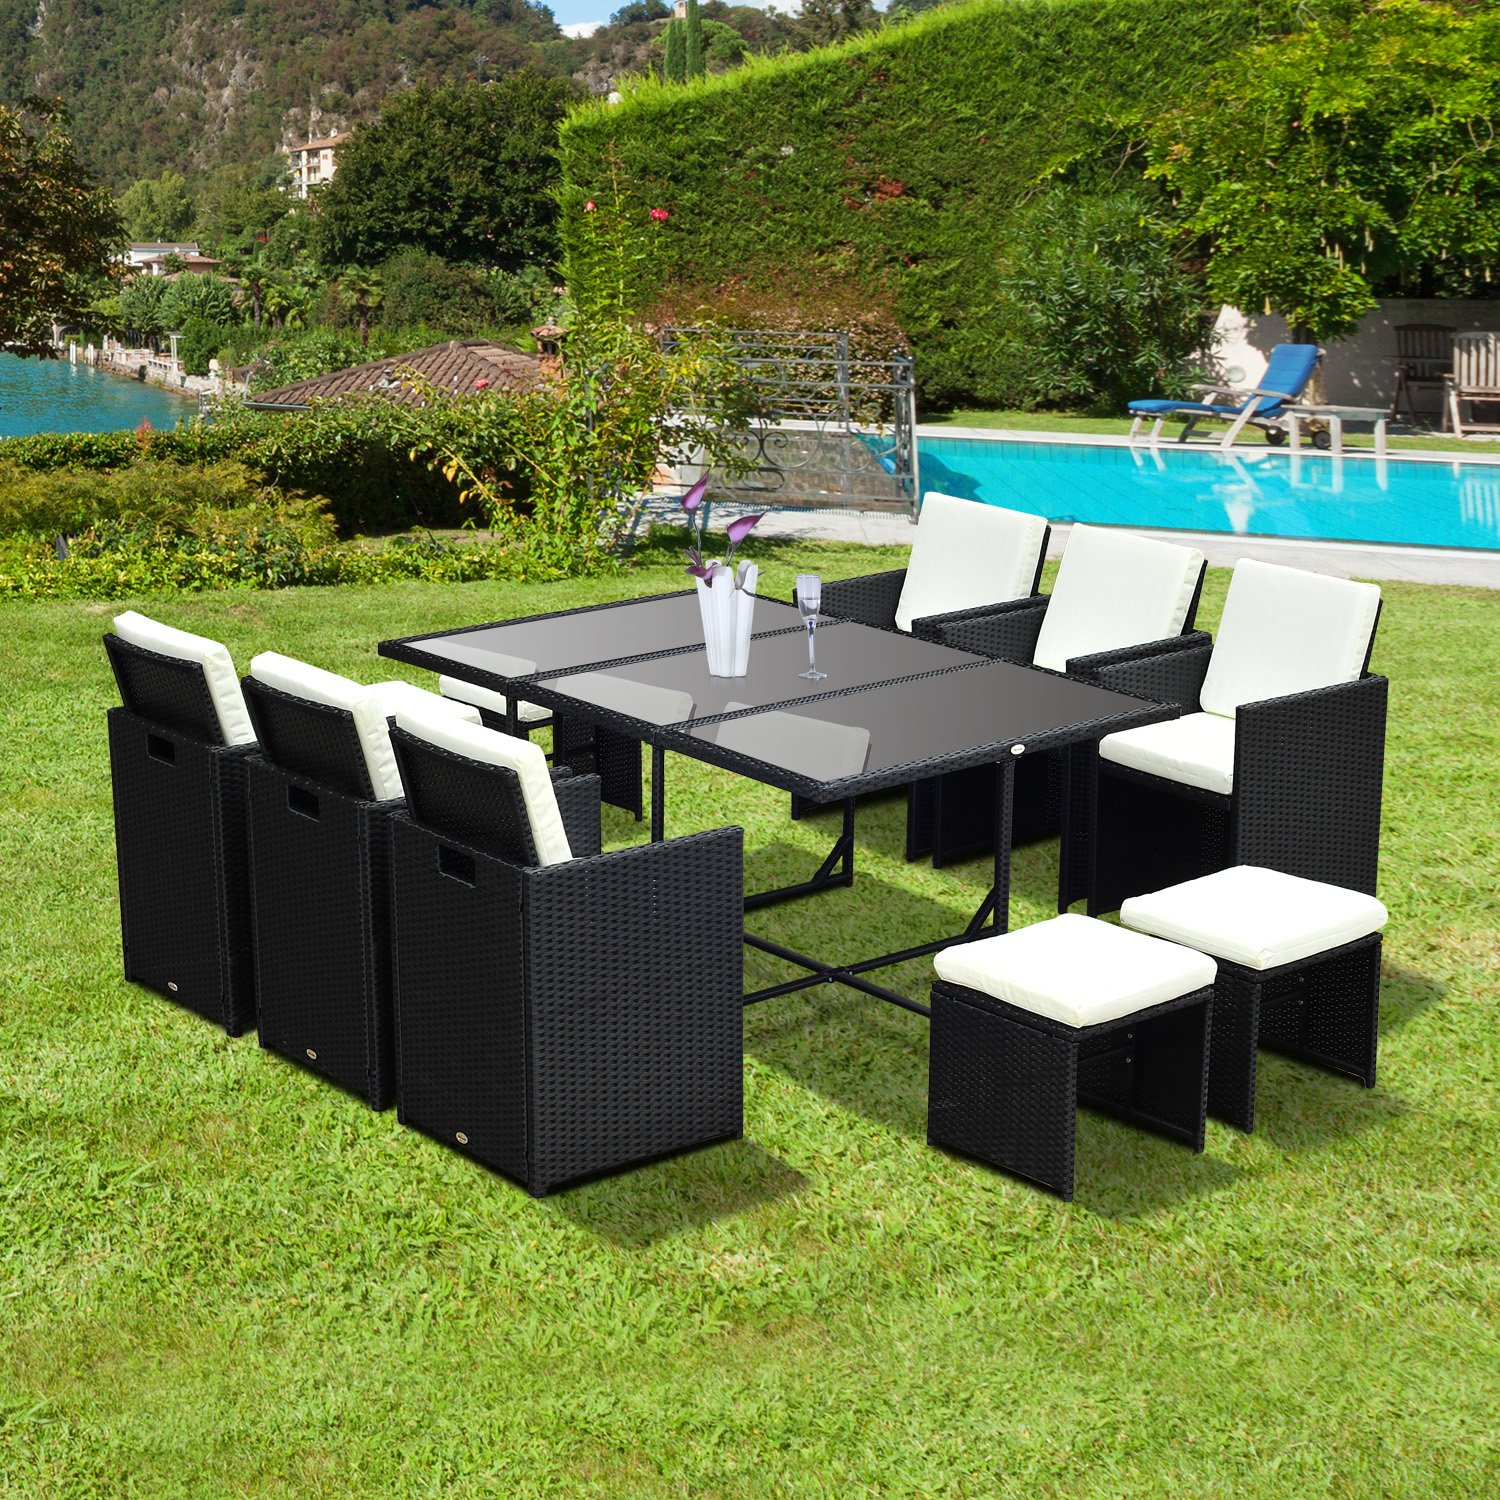 ... Rattan Garden Furniture 6 Seater